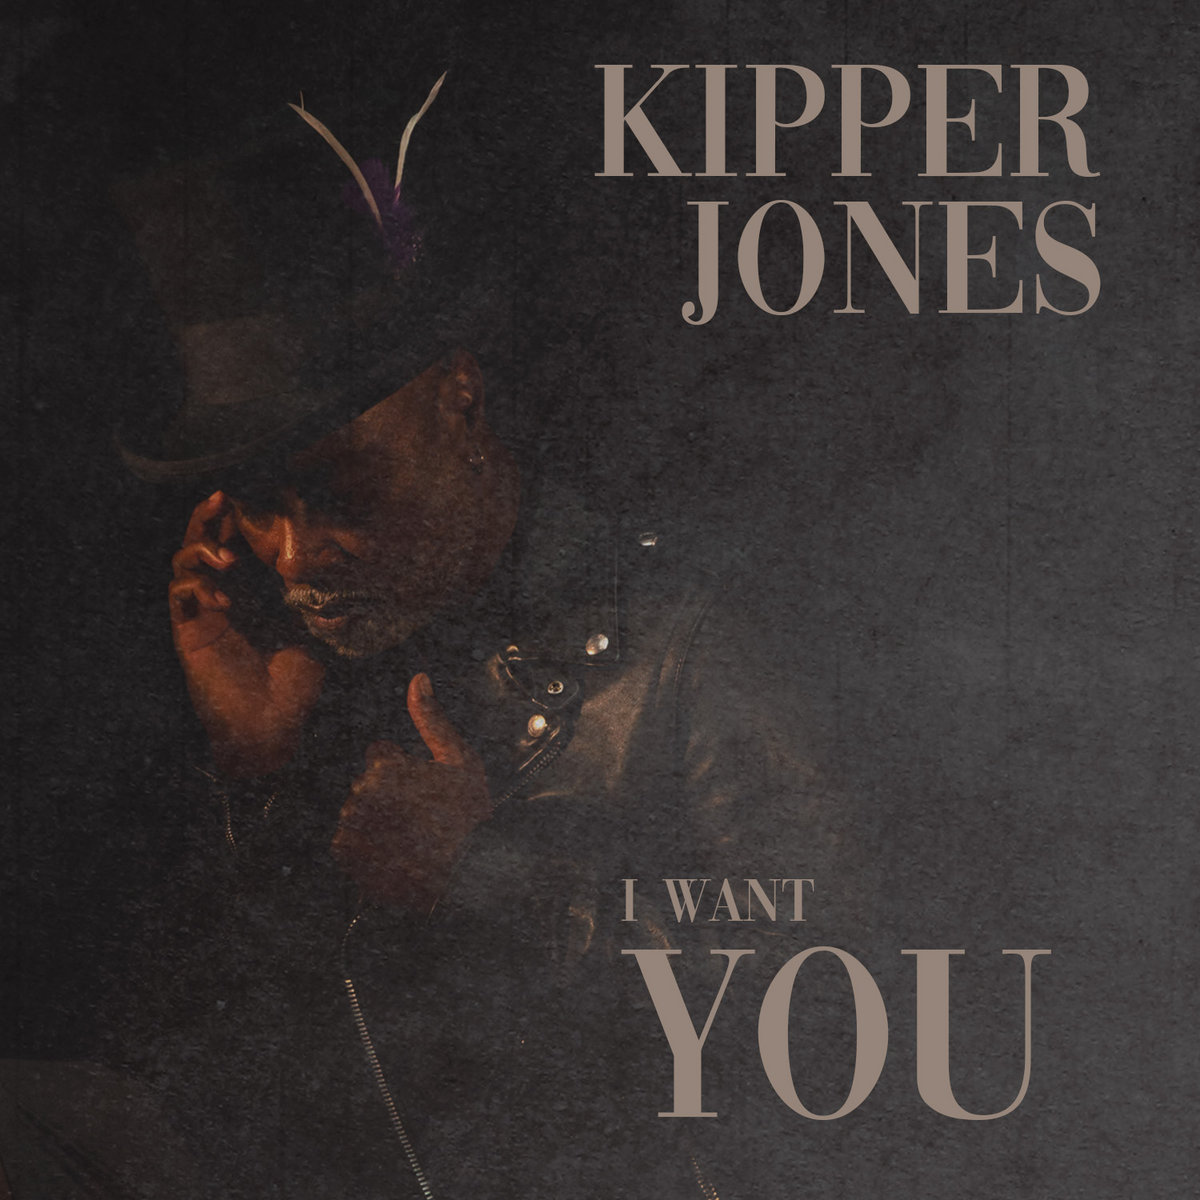 I Want You by Kipper Jones